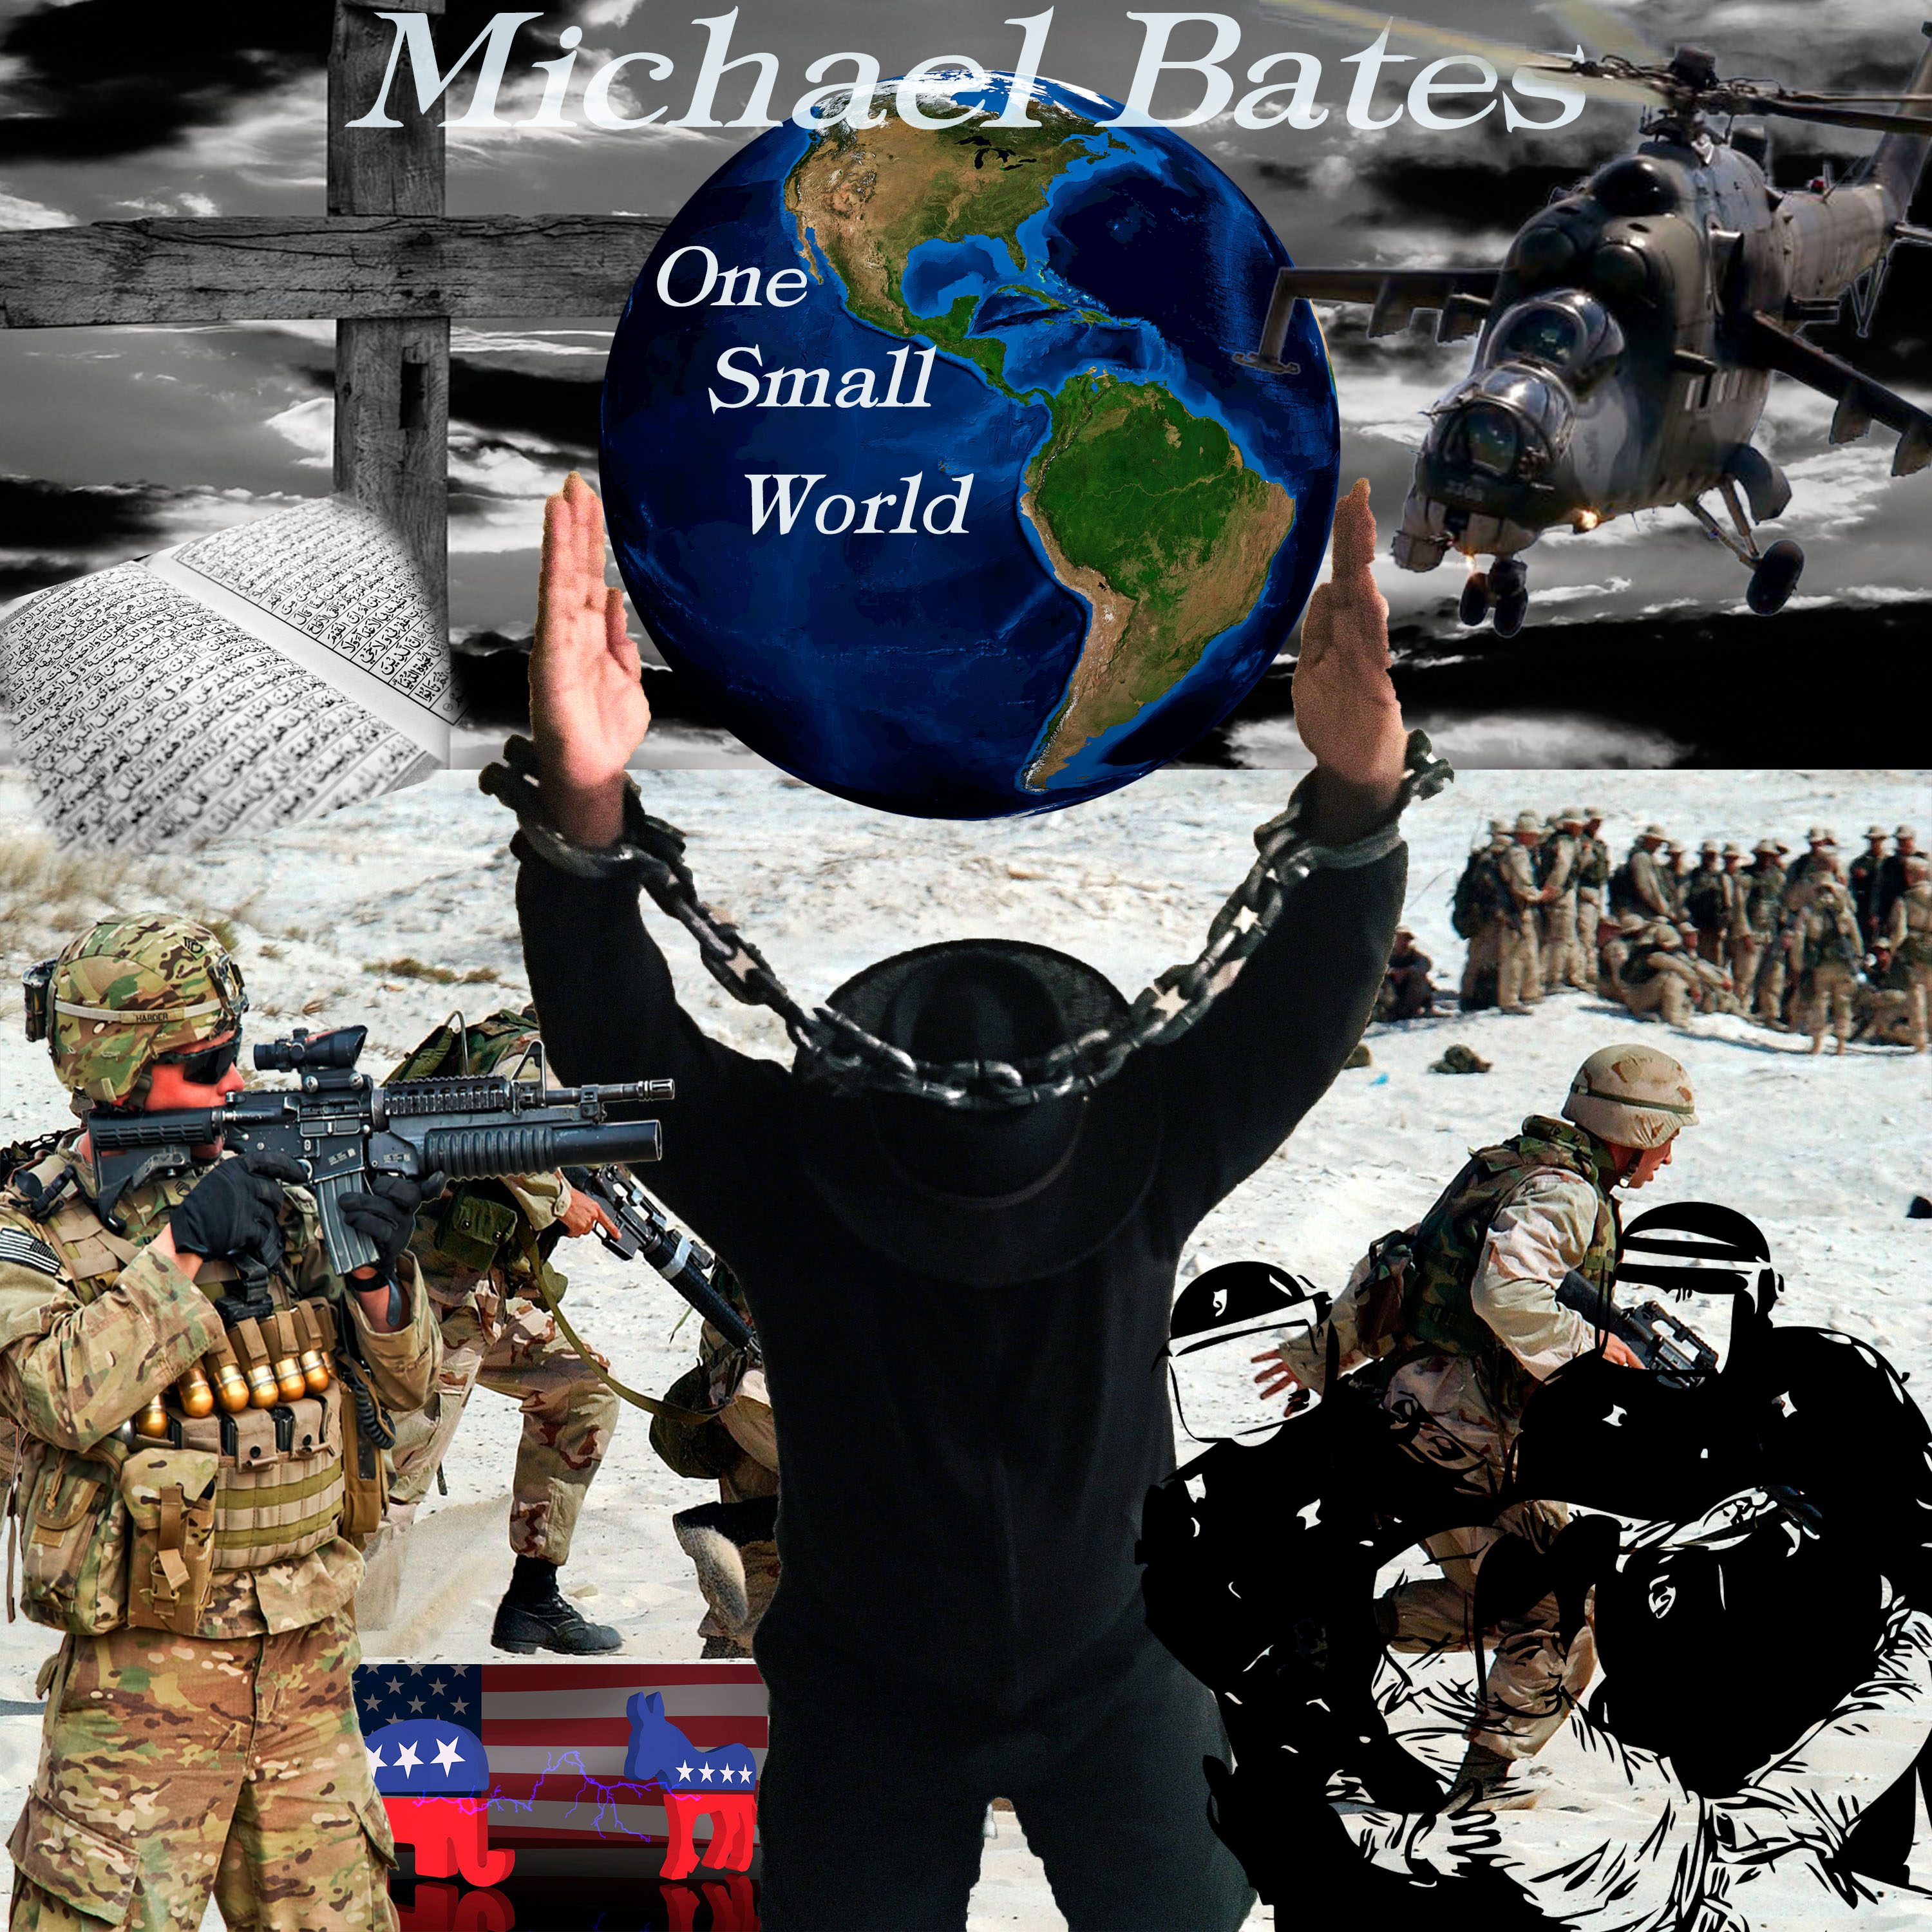 Michael Bates One Small World